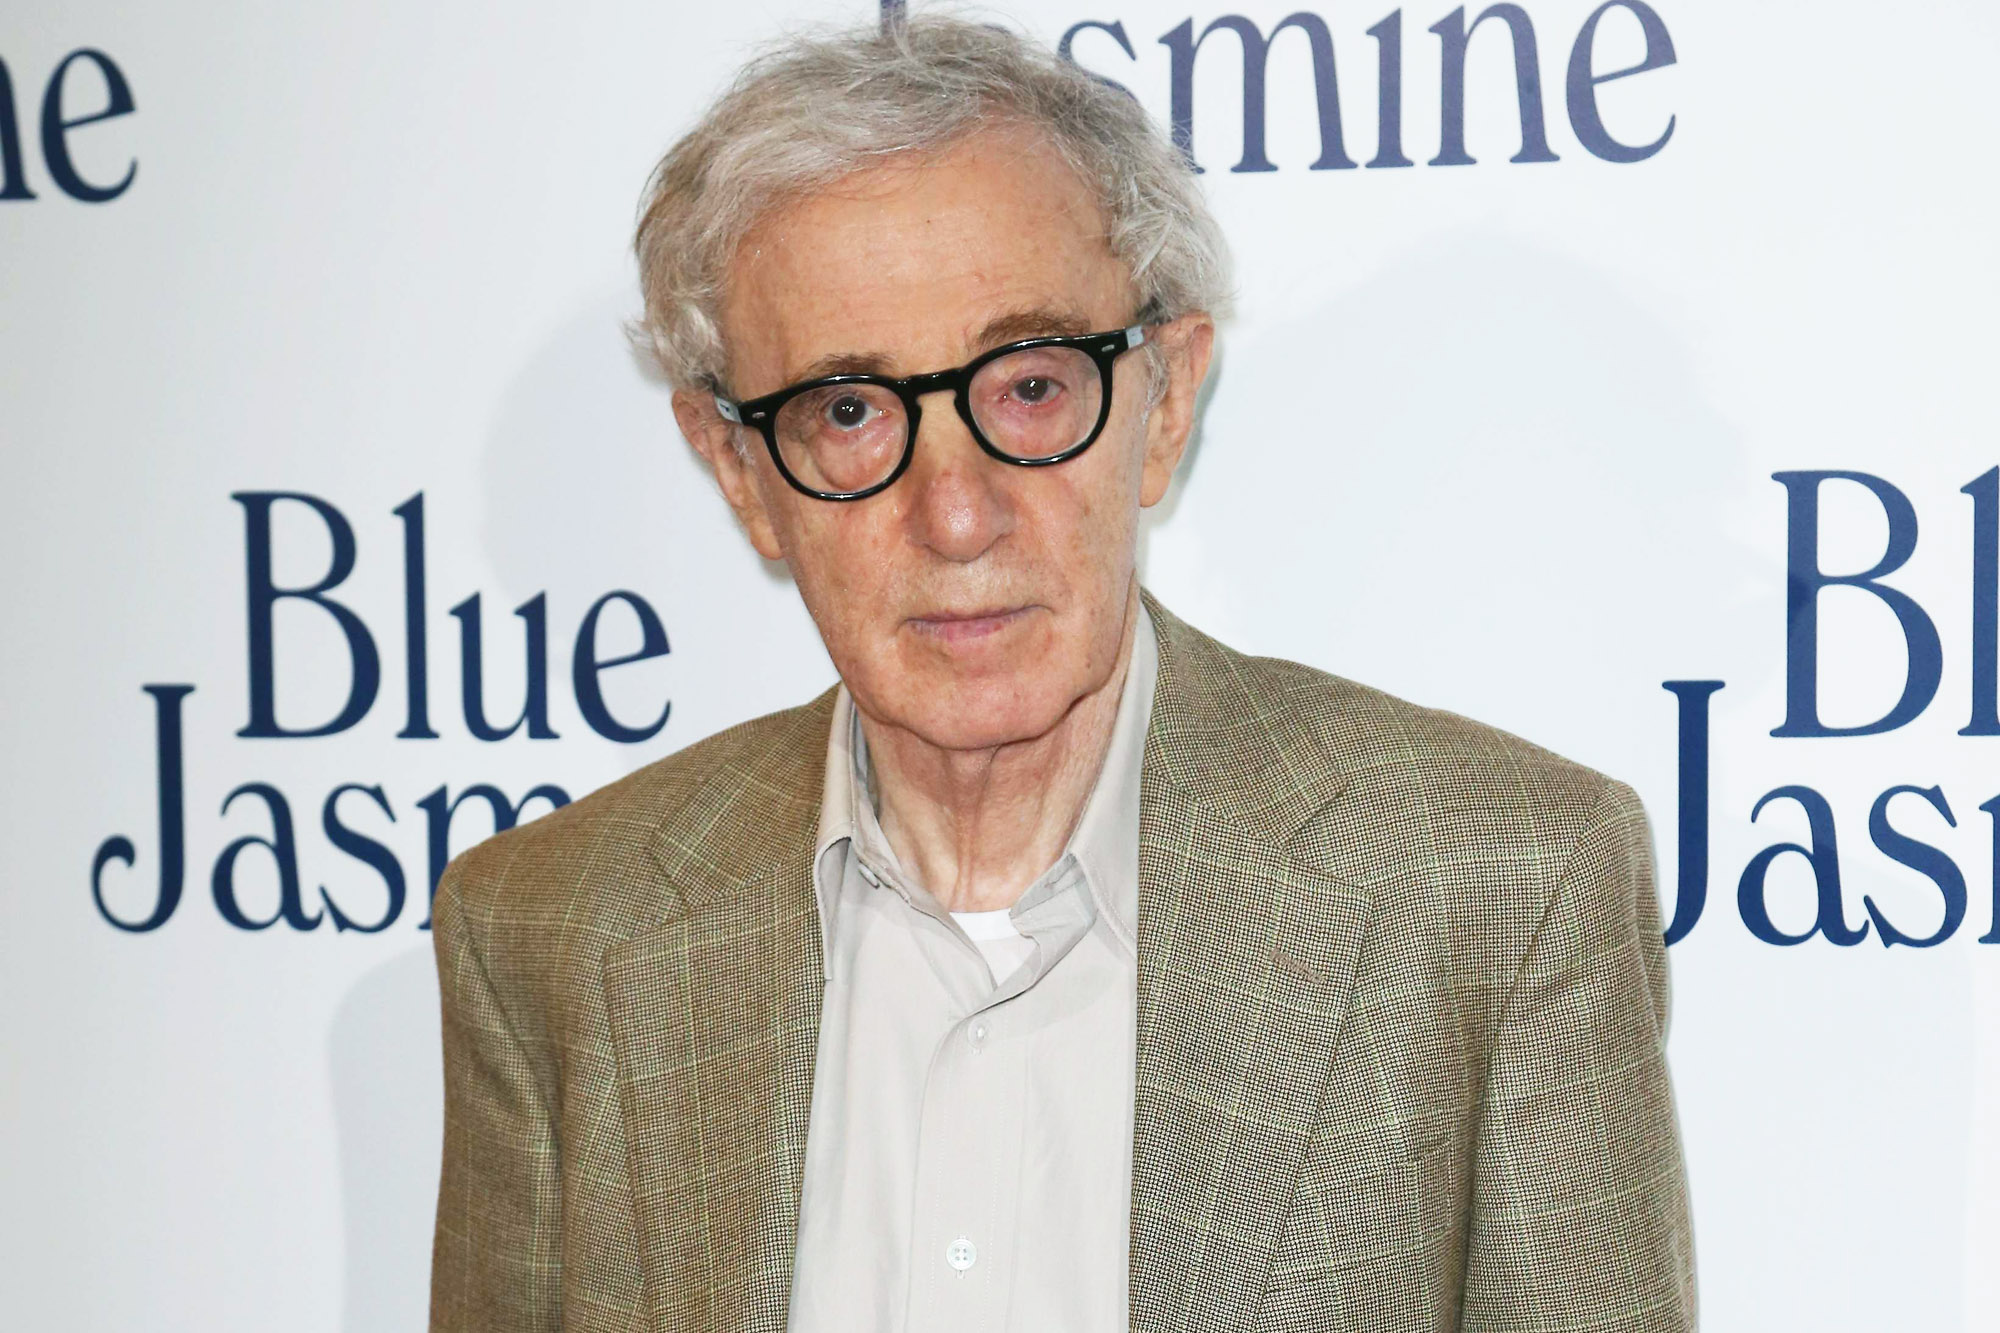 Modal Trigger. Statute of limitations means Woody Allen ...